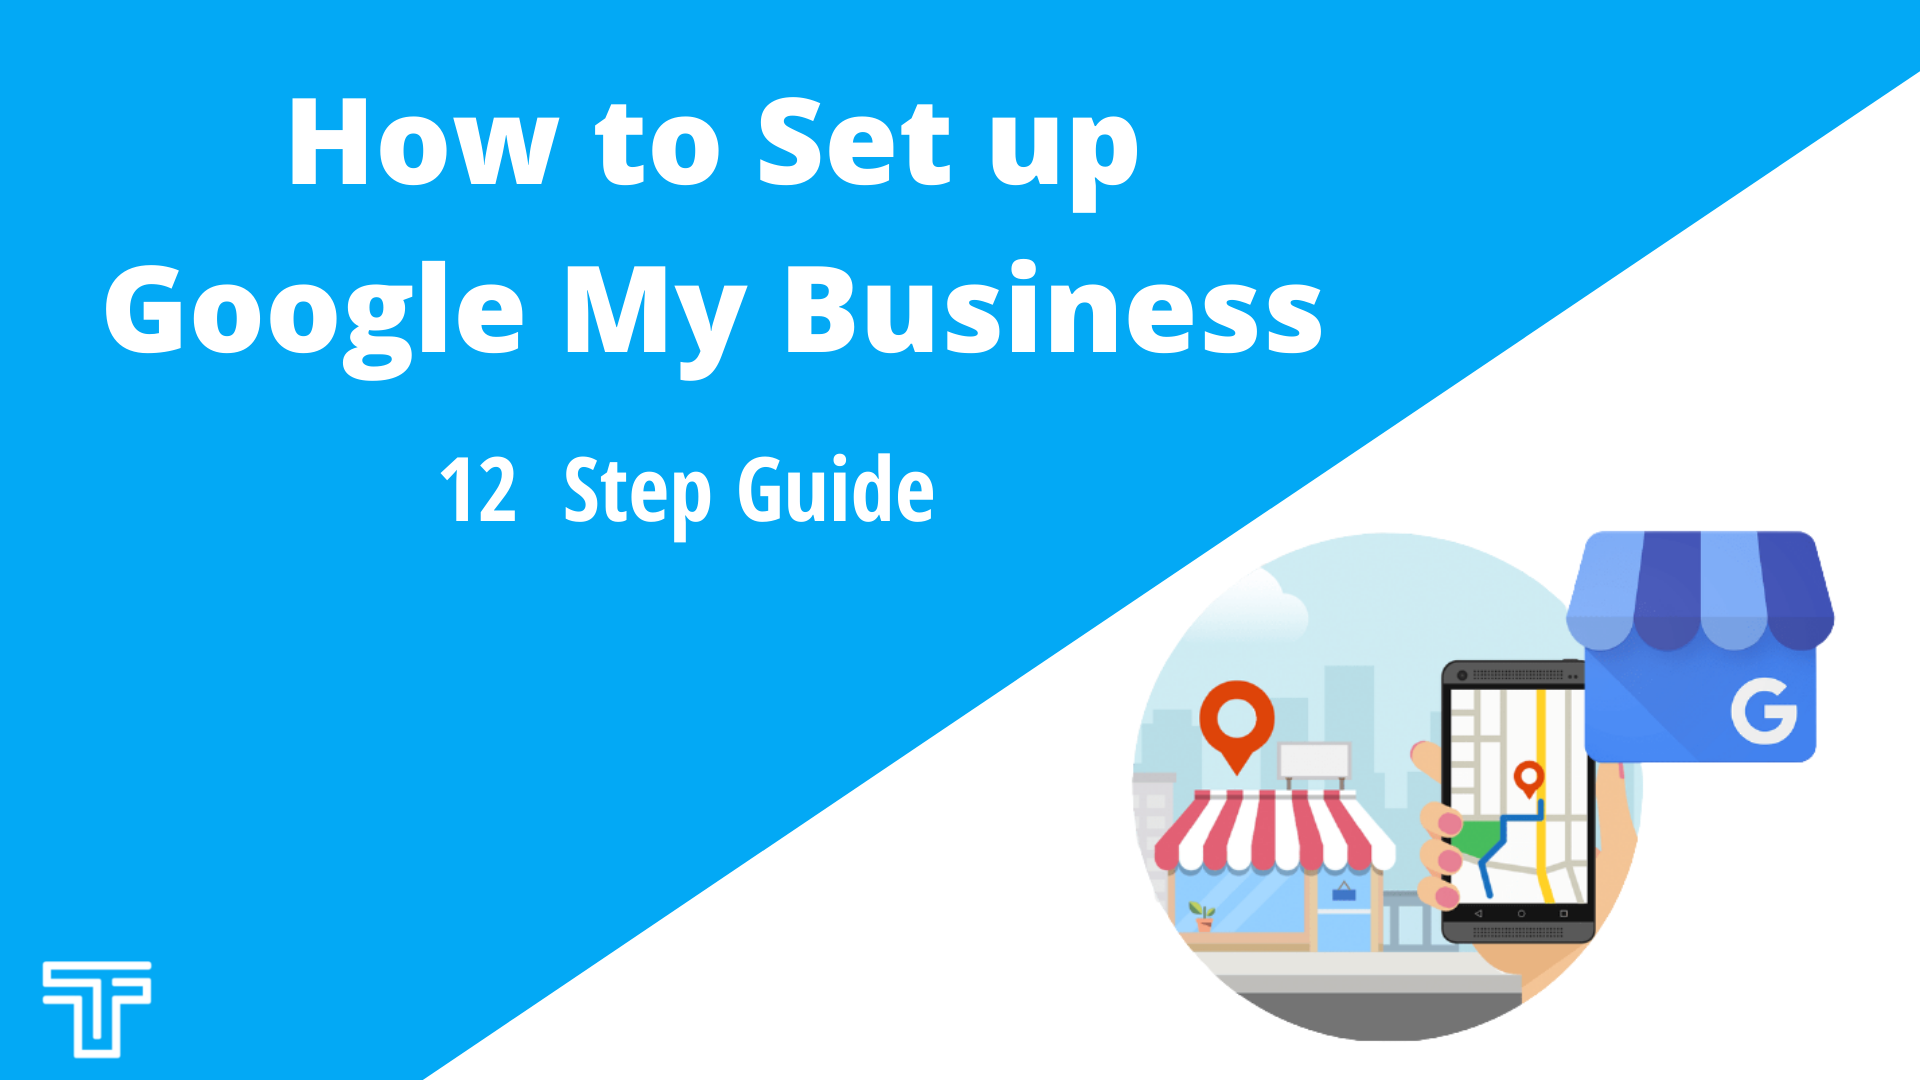 12 step guide to set up google my business